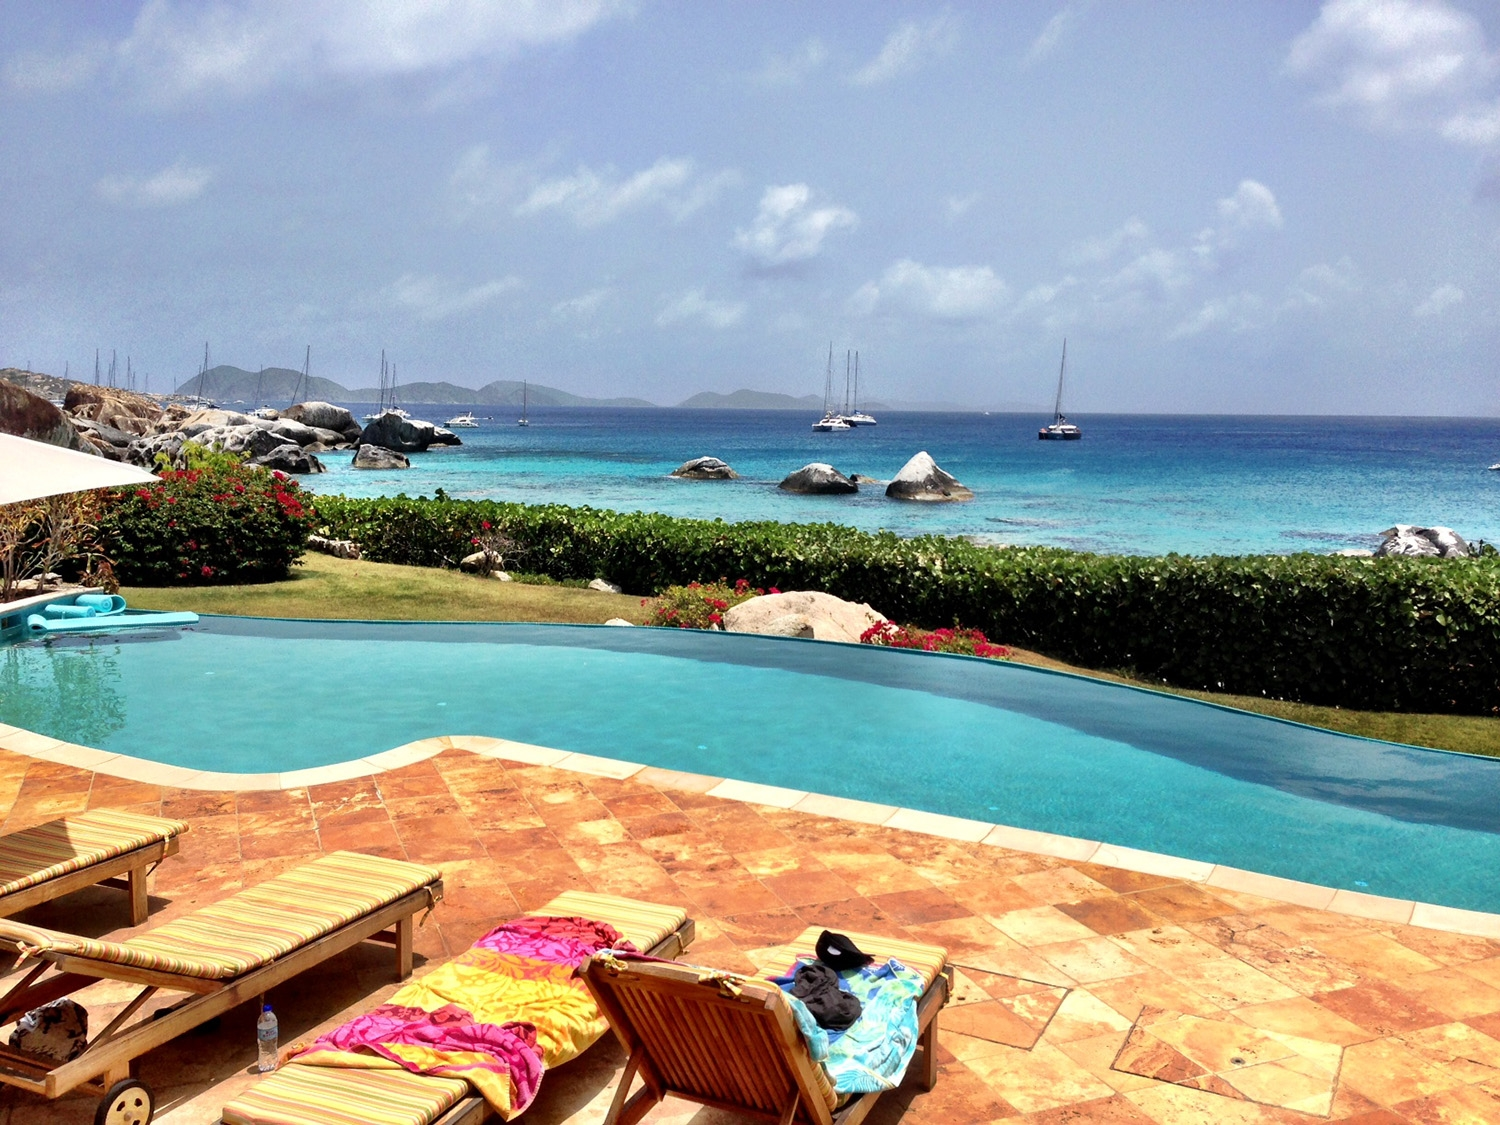 Sitting poolside with a grassy patch separating the boat filled ocean from the villa